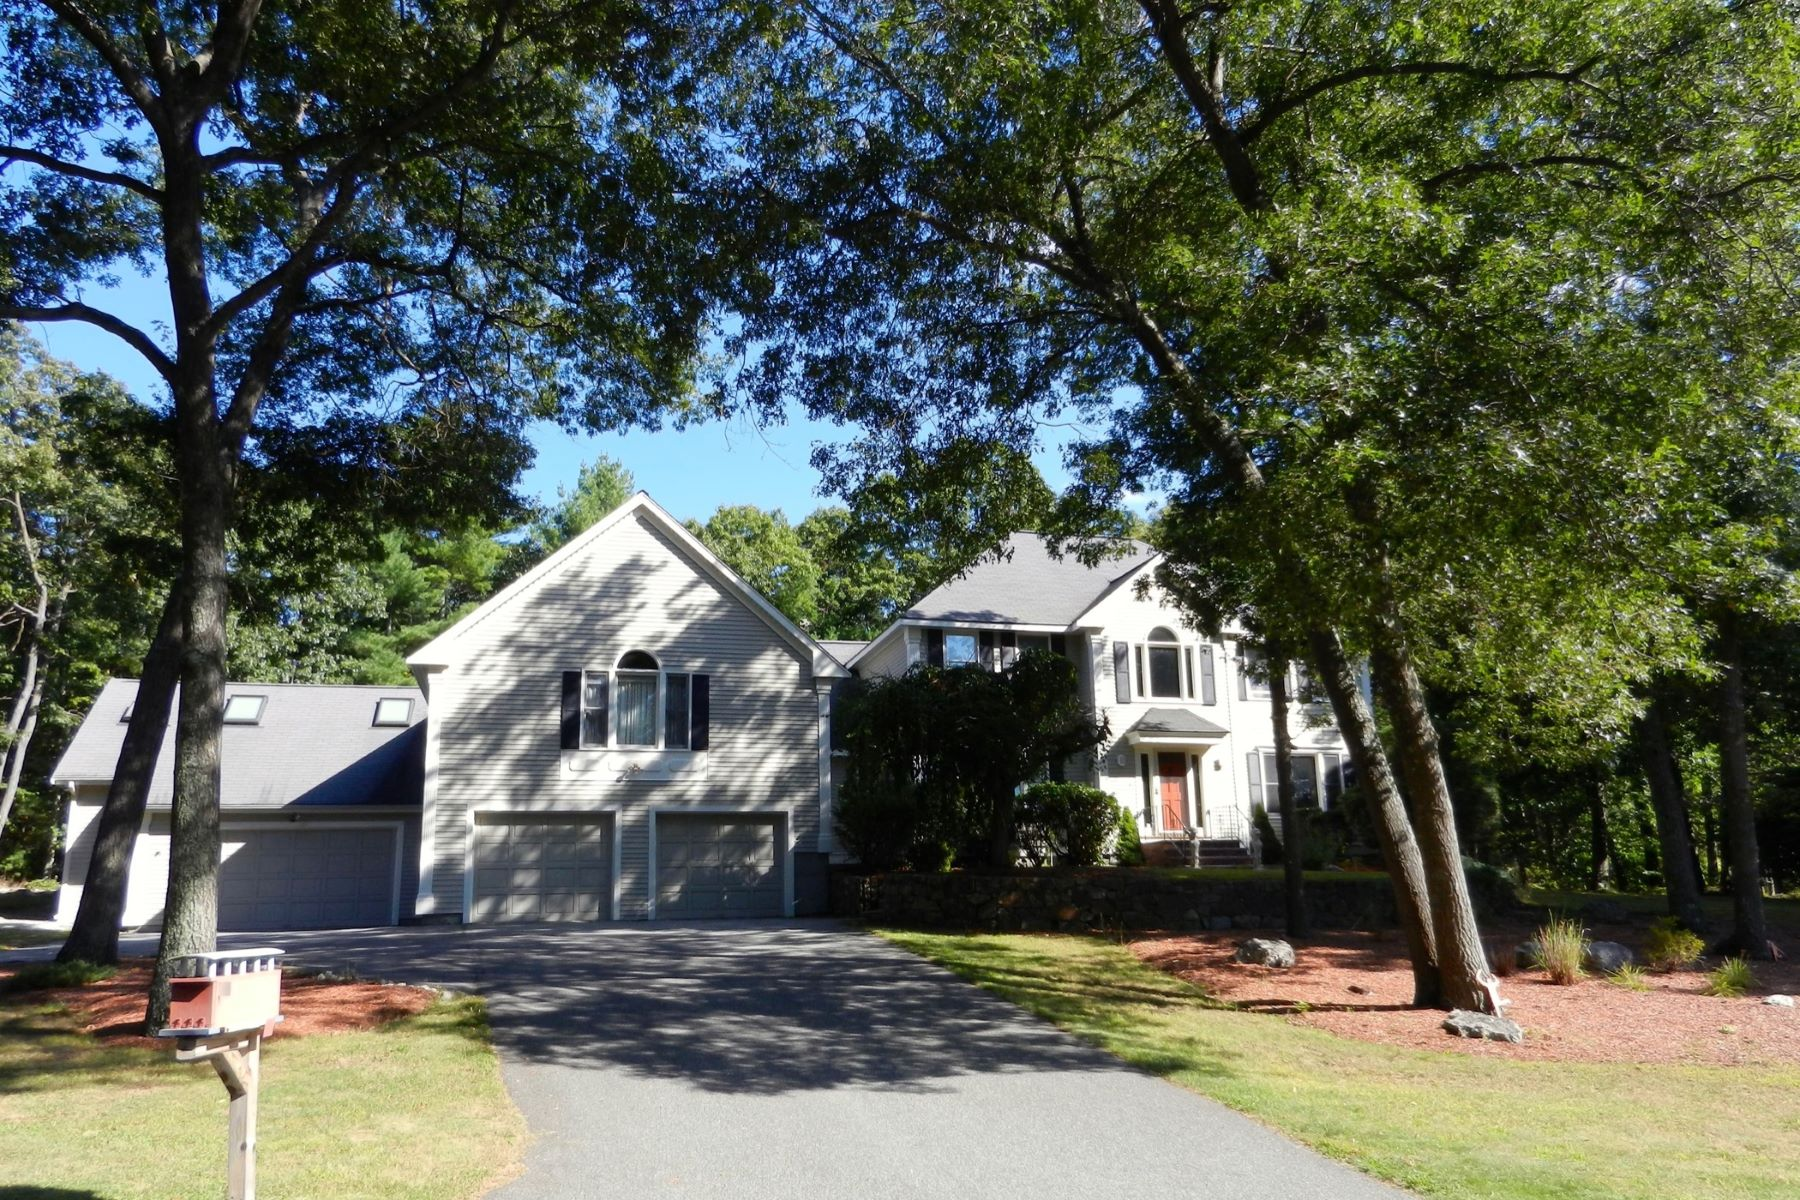 Single Family Home for Sale at The Estates At Page Hill 9 Crestview Road Bedford, Massachusetts 01730 United States